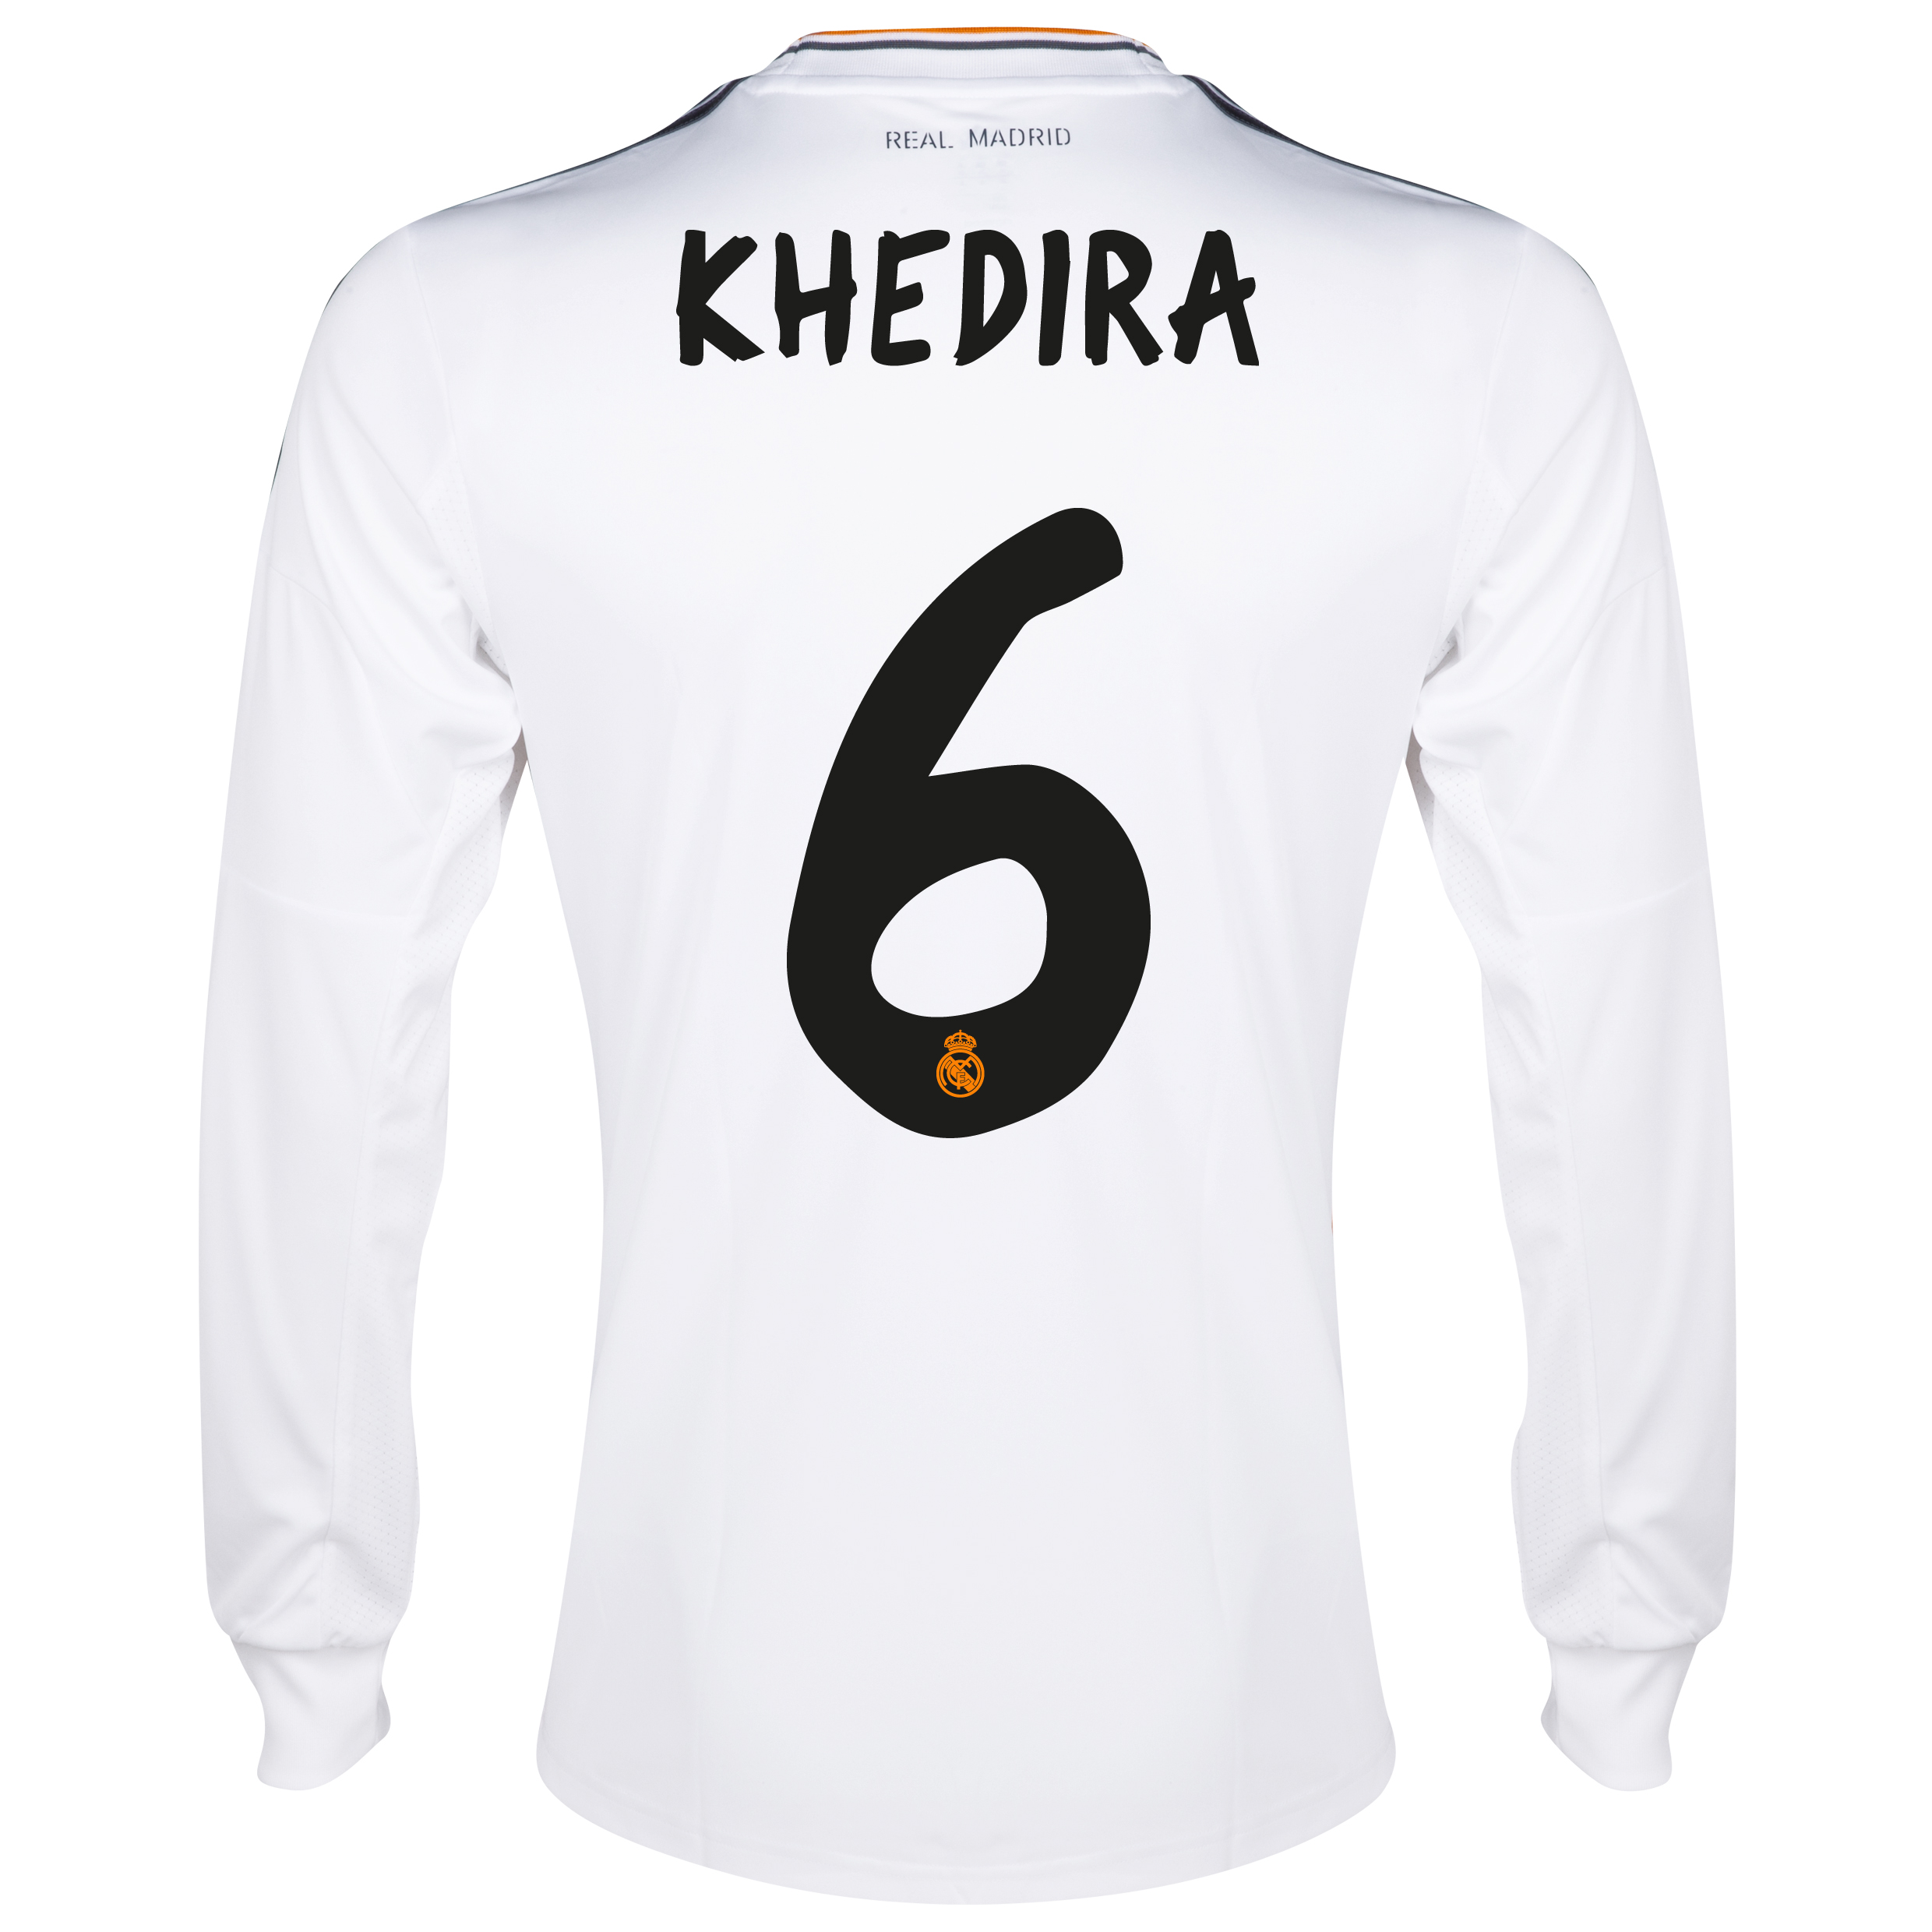 Real Madrid Home Shirt 2013/14 - Long Sleeve with Khedira 6 printing